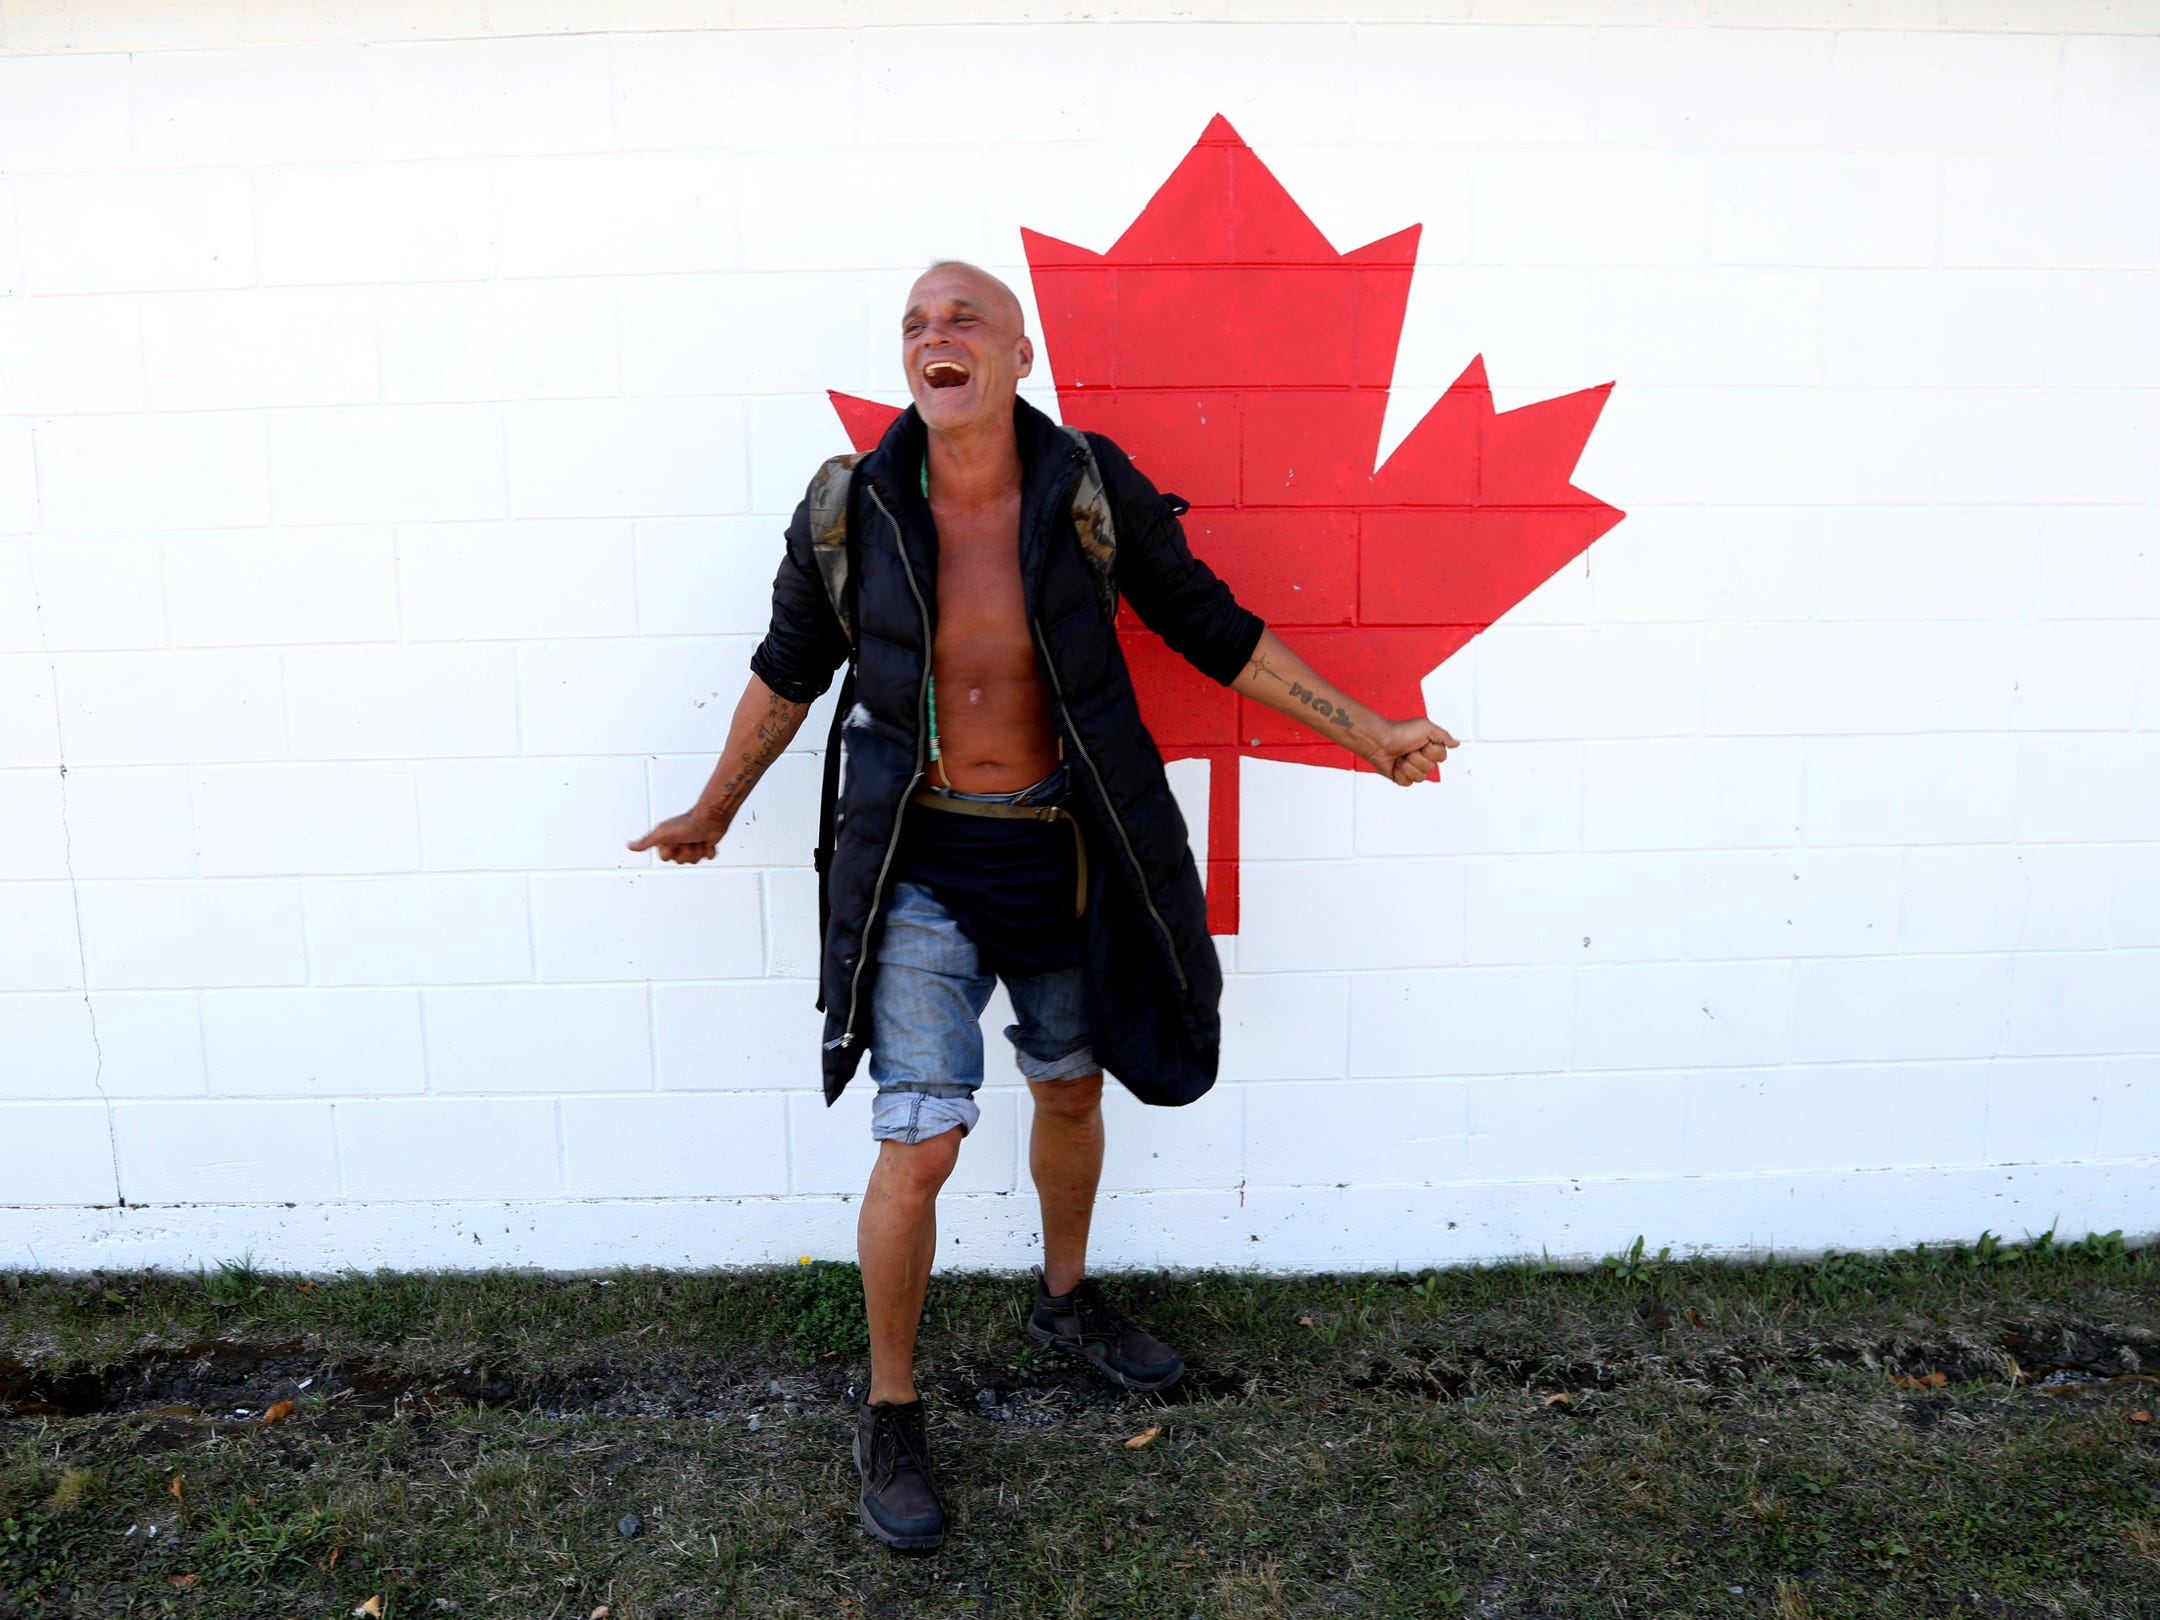 Joe Murphy has a laugh behind a baseball dugout in Kenora, Ontario, Canada. Murphy who played for the Detroit Red Wings from 1986 to 1990 before being traded to the Edmonton Oilers, has been homeless and  living in Kenora.